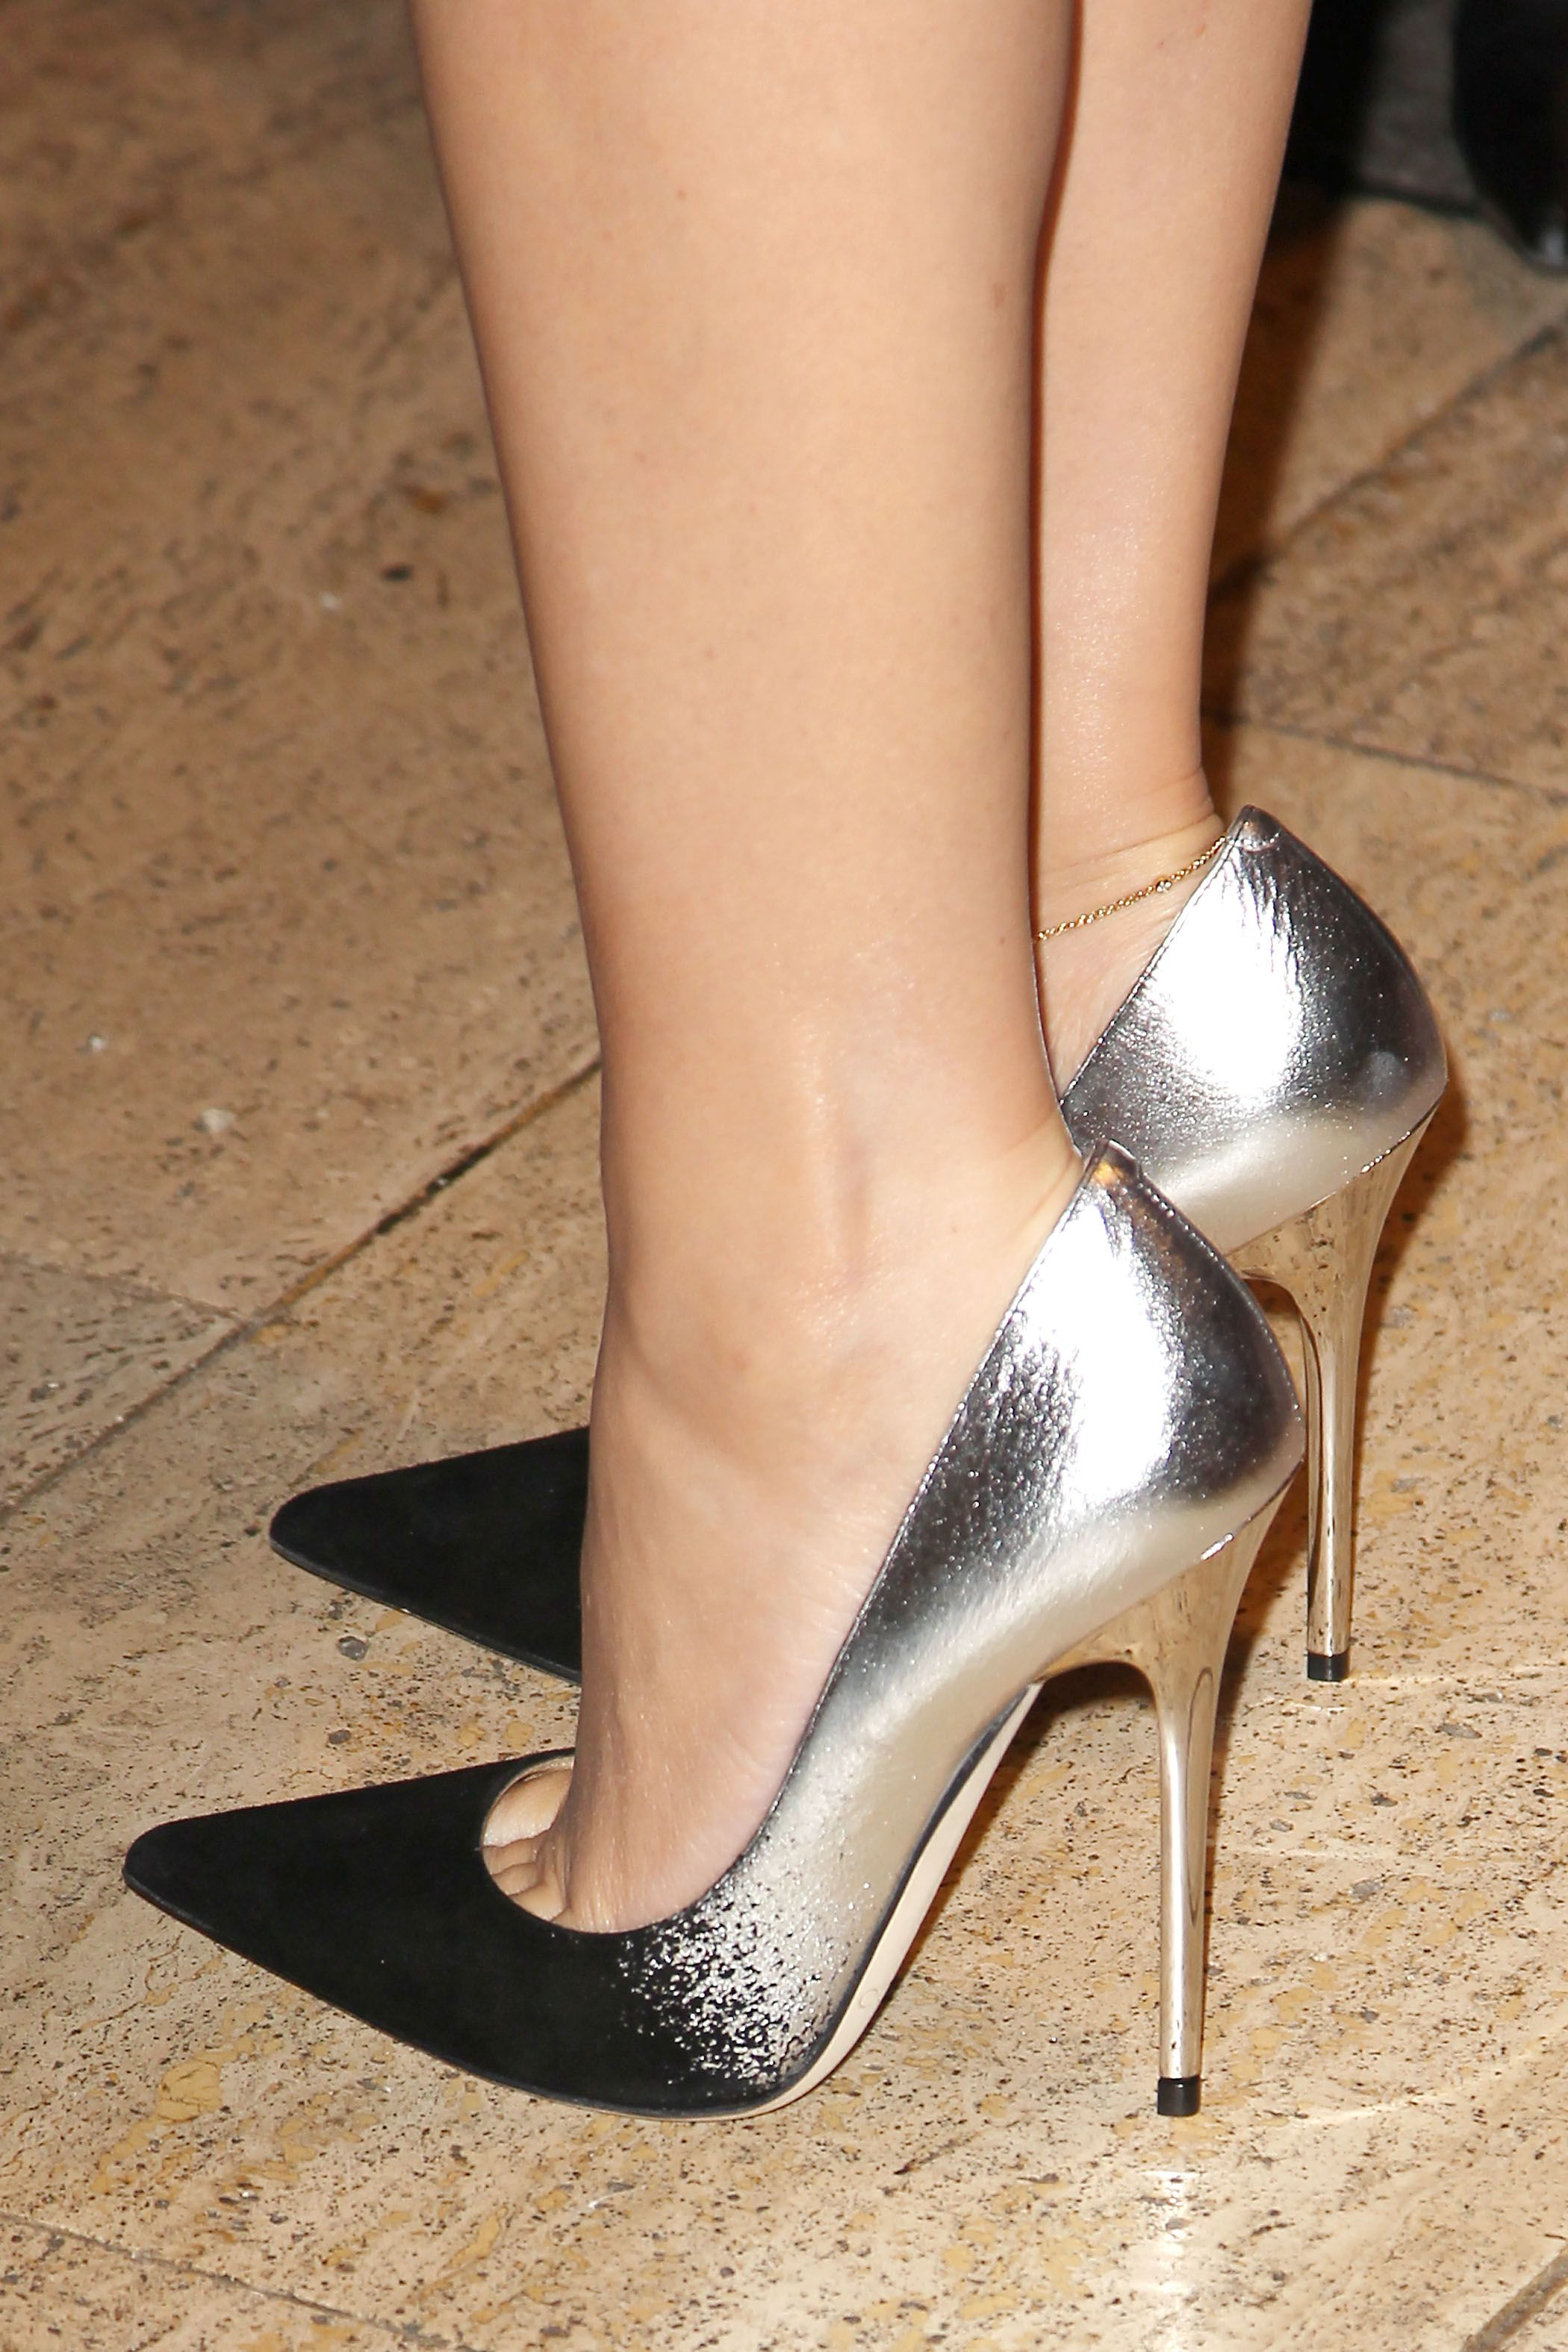 5b95bfddd4 jimmy choo anouk pumps in black/silver on the feet of kylie minogue.  #shoeporn